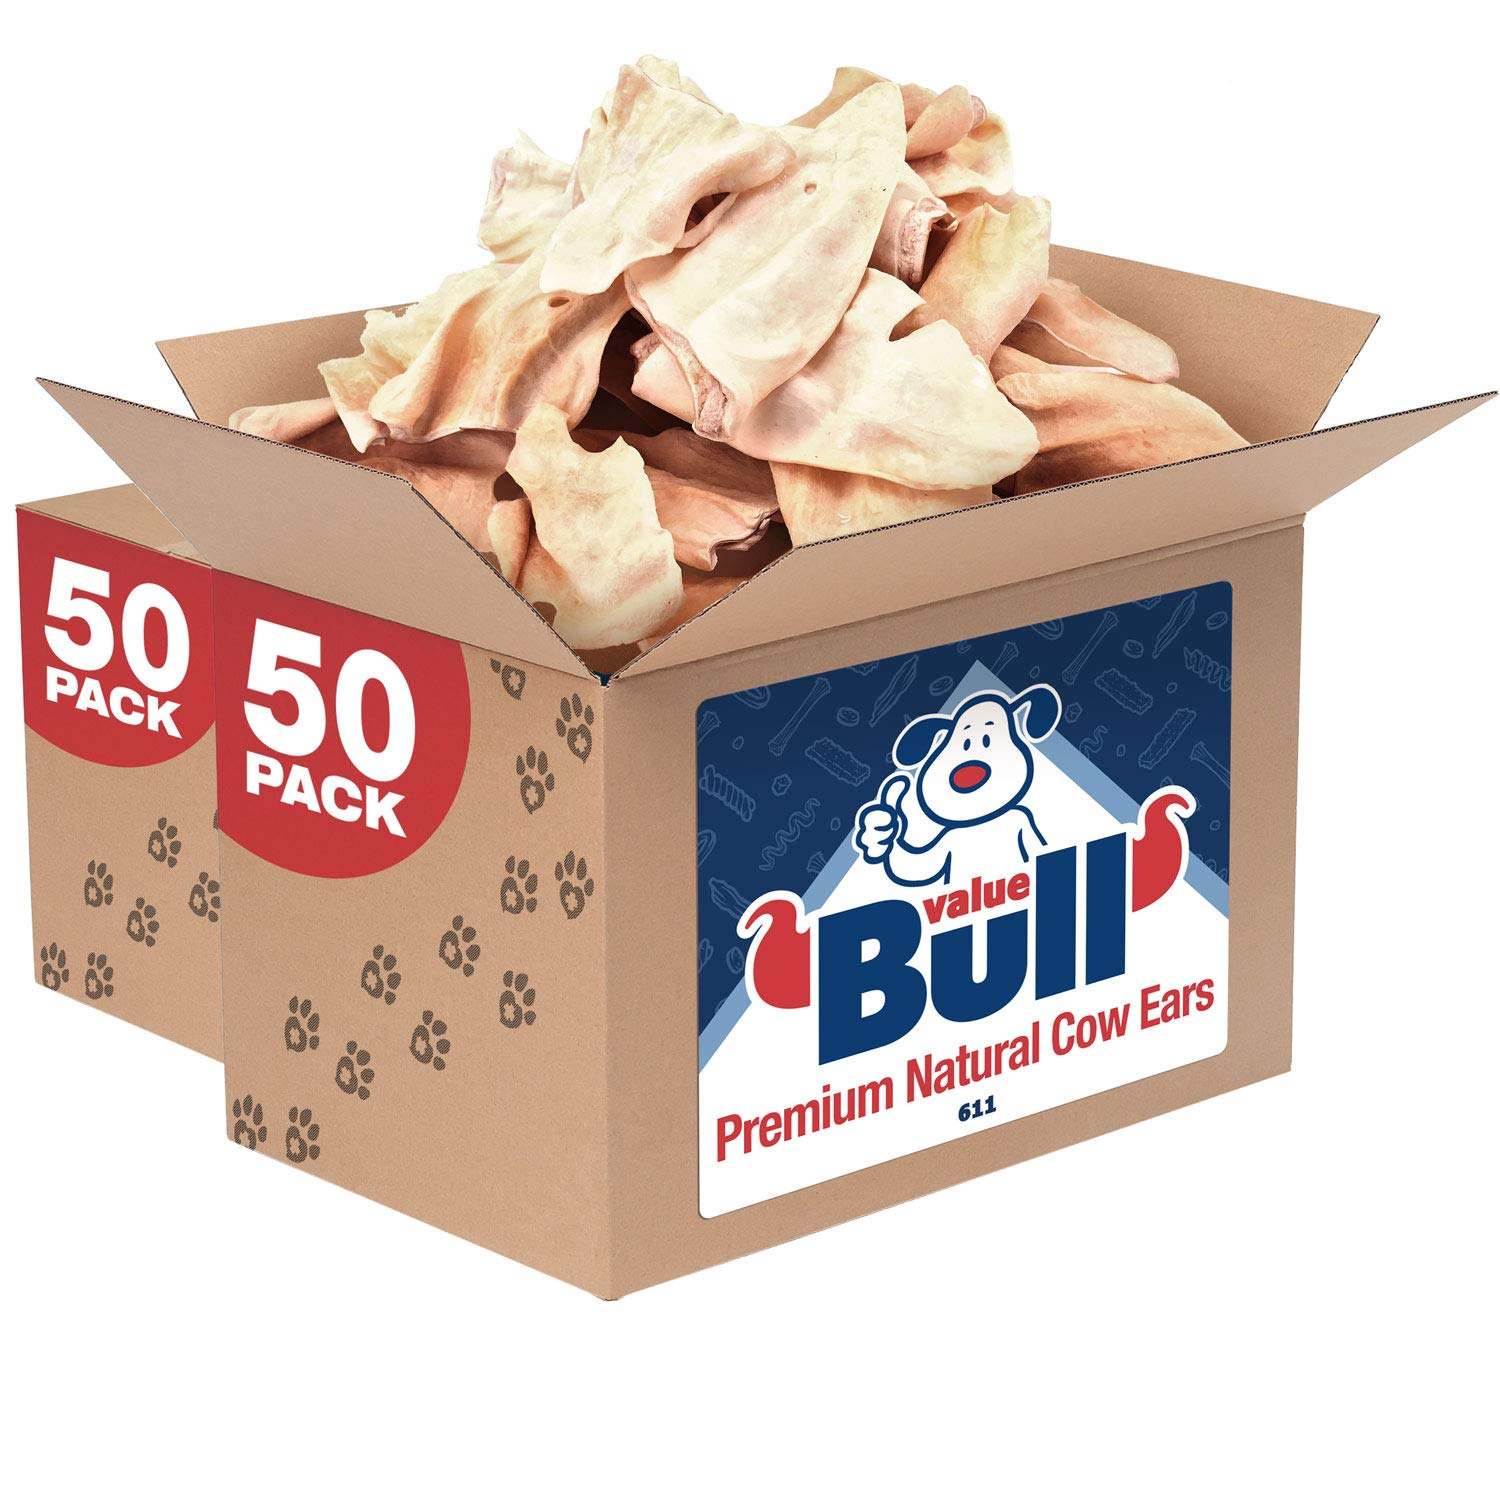 ValueBull Premium Natural Cow Ears Dog Chews, 100 Count by ValueBull